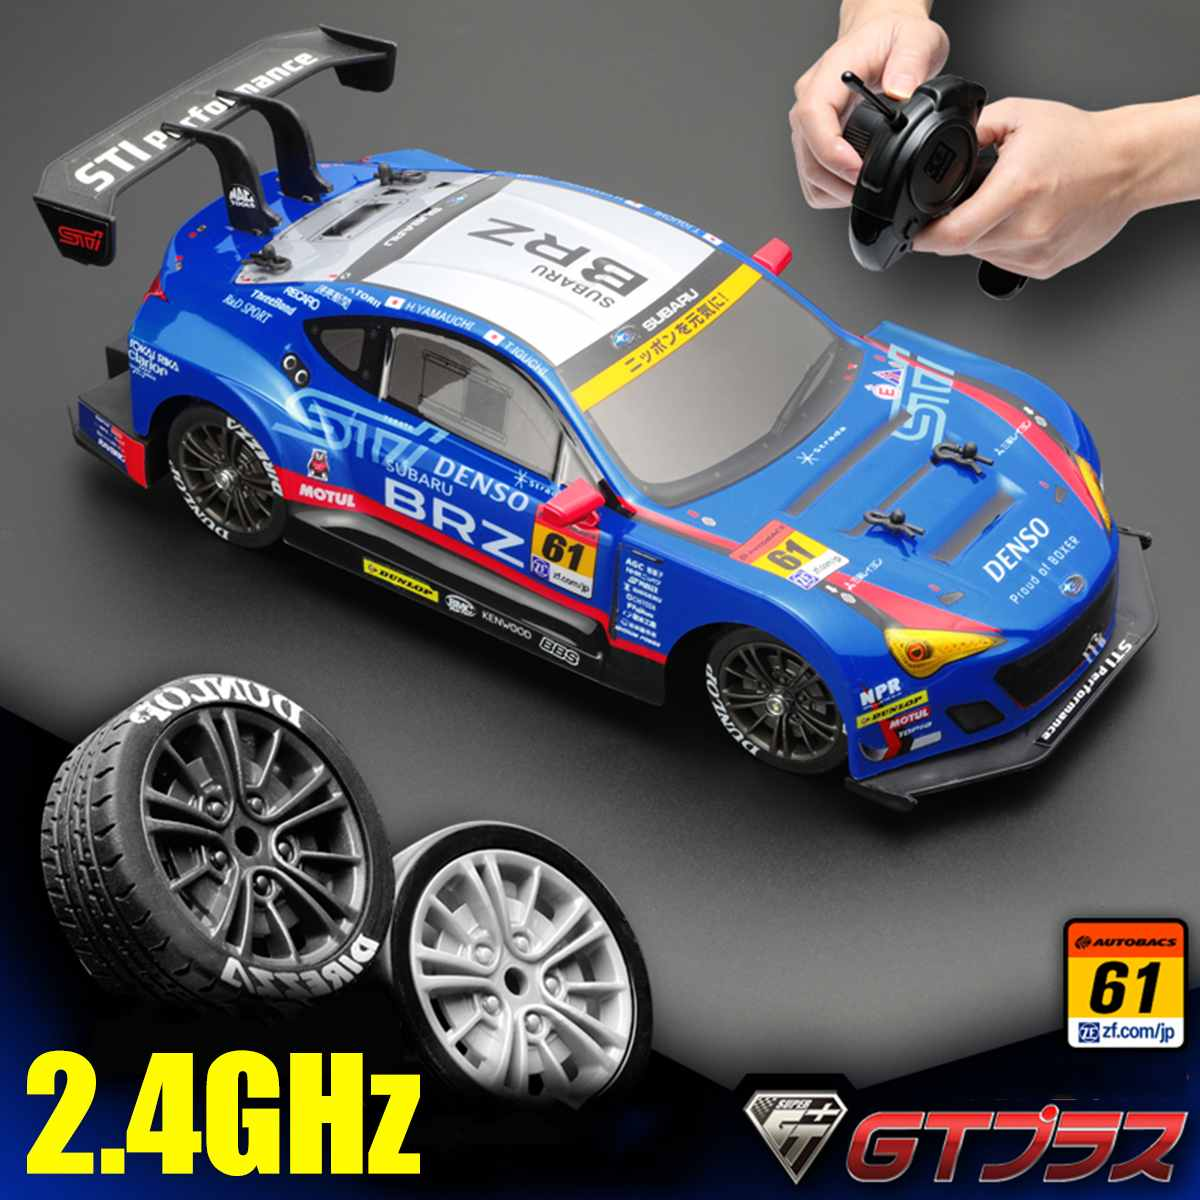 1:16 RC Car 4WD Drift Racing Car Championship 2.4G Off Road Radio Remote Control Vehicle Electronic Hobby Toys